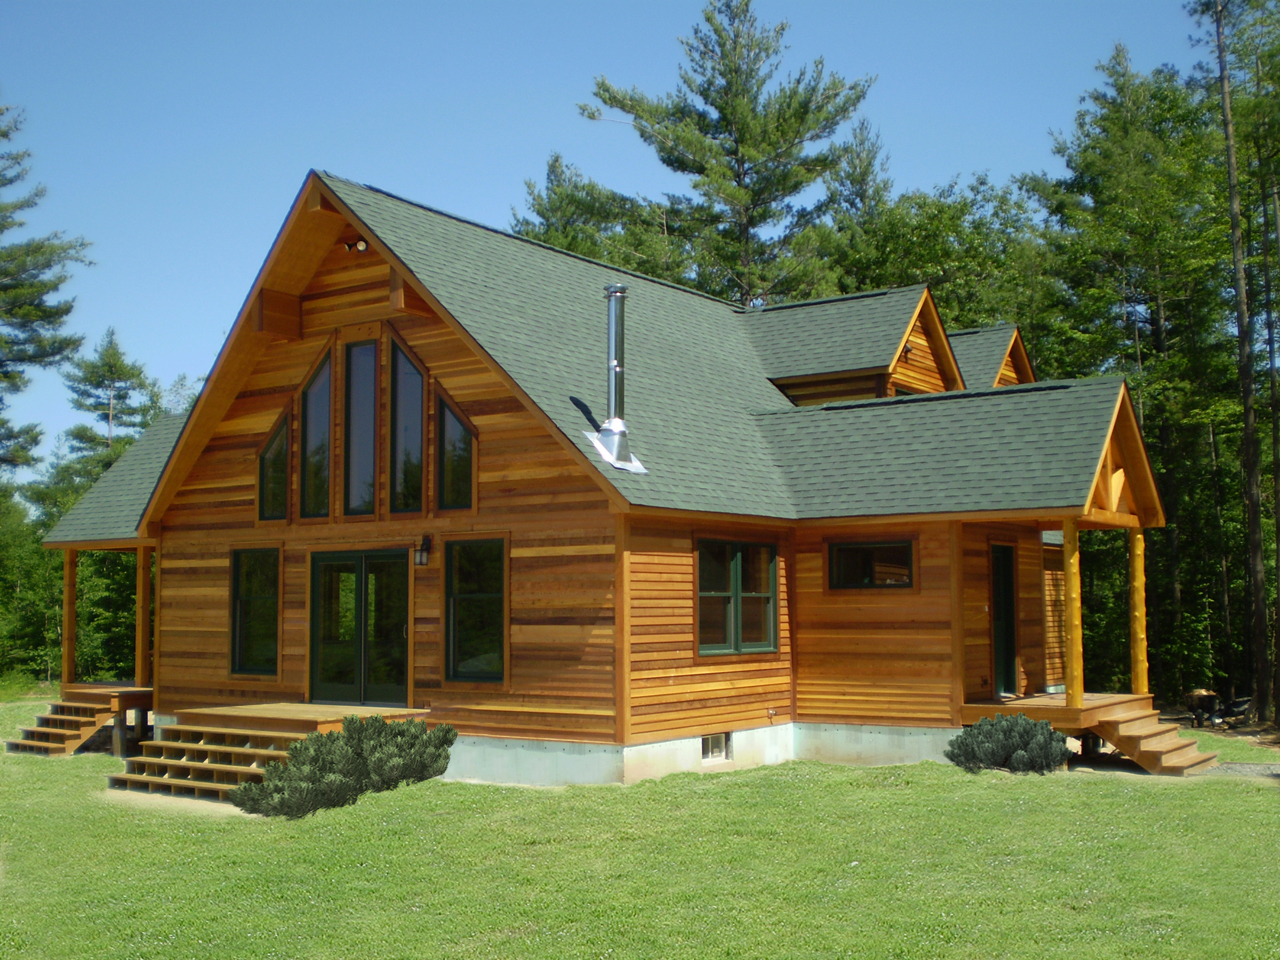 Custom modular homes saratoga construction llc for Unique log homes